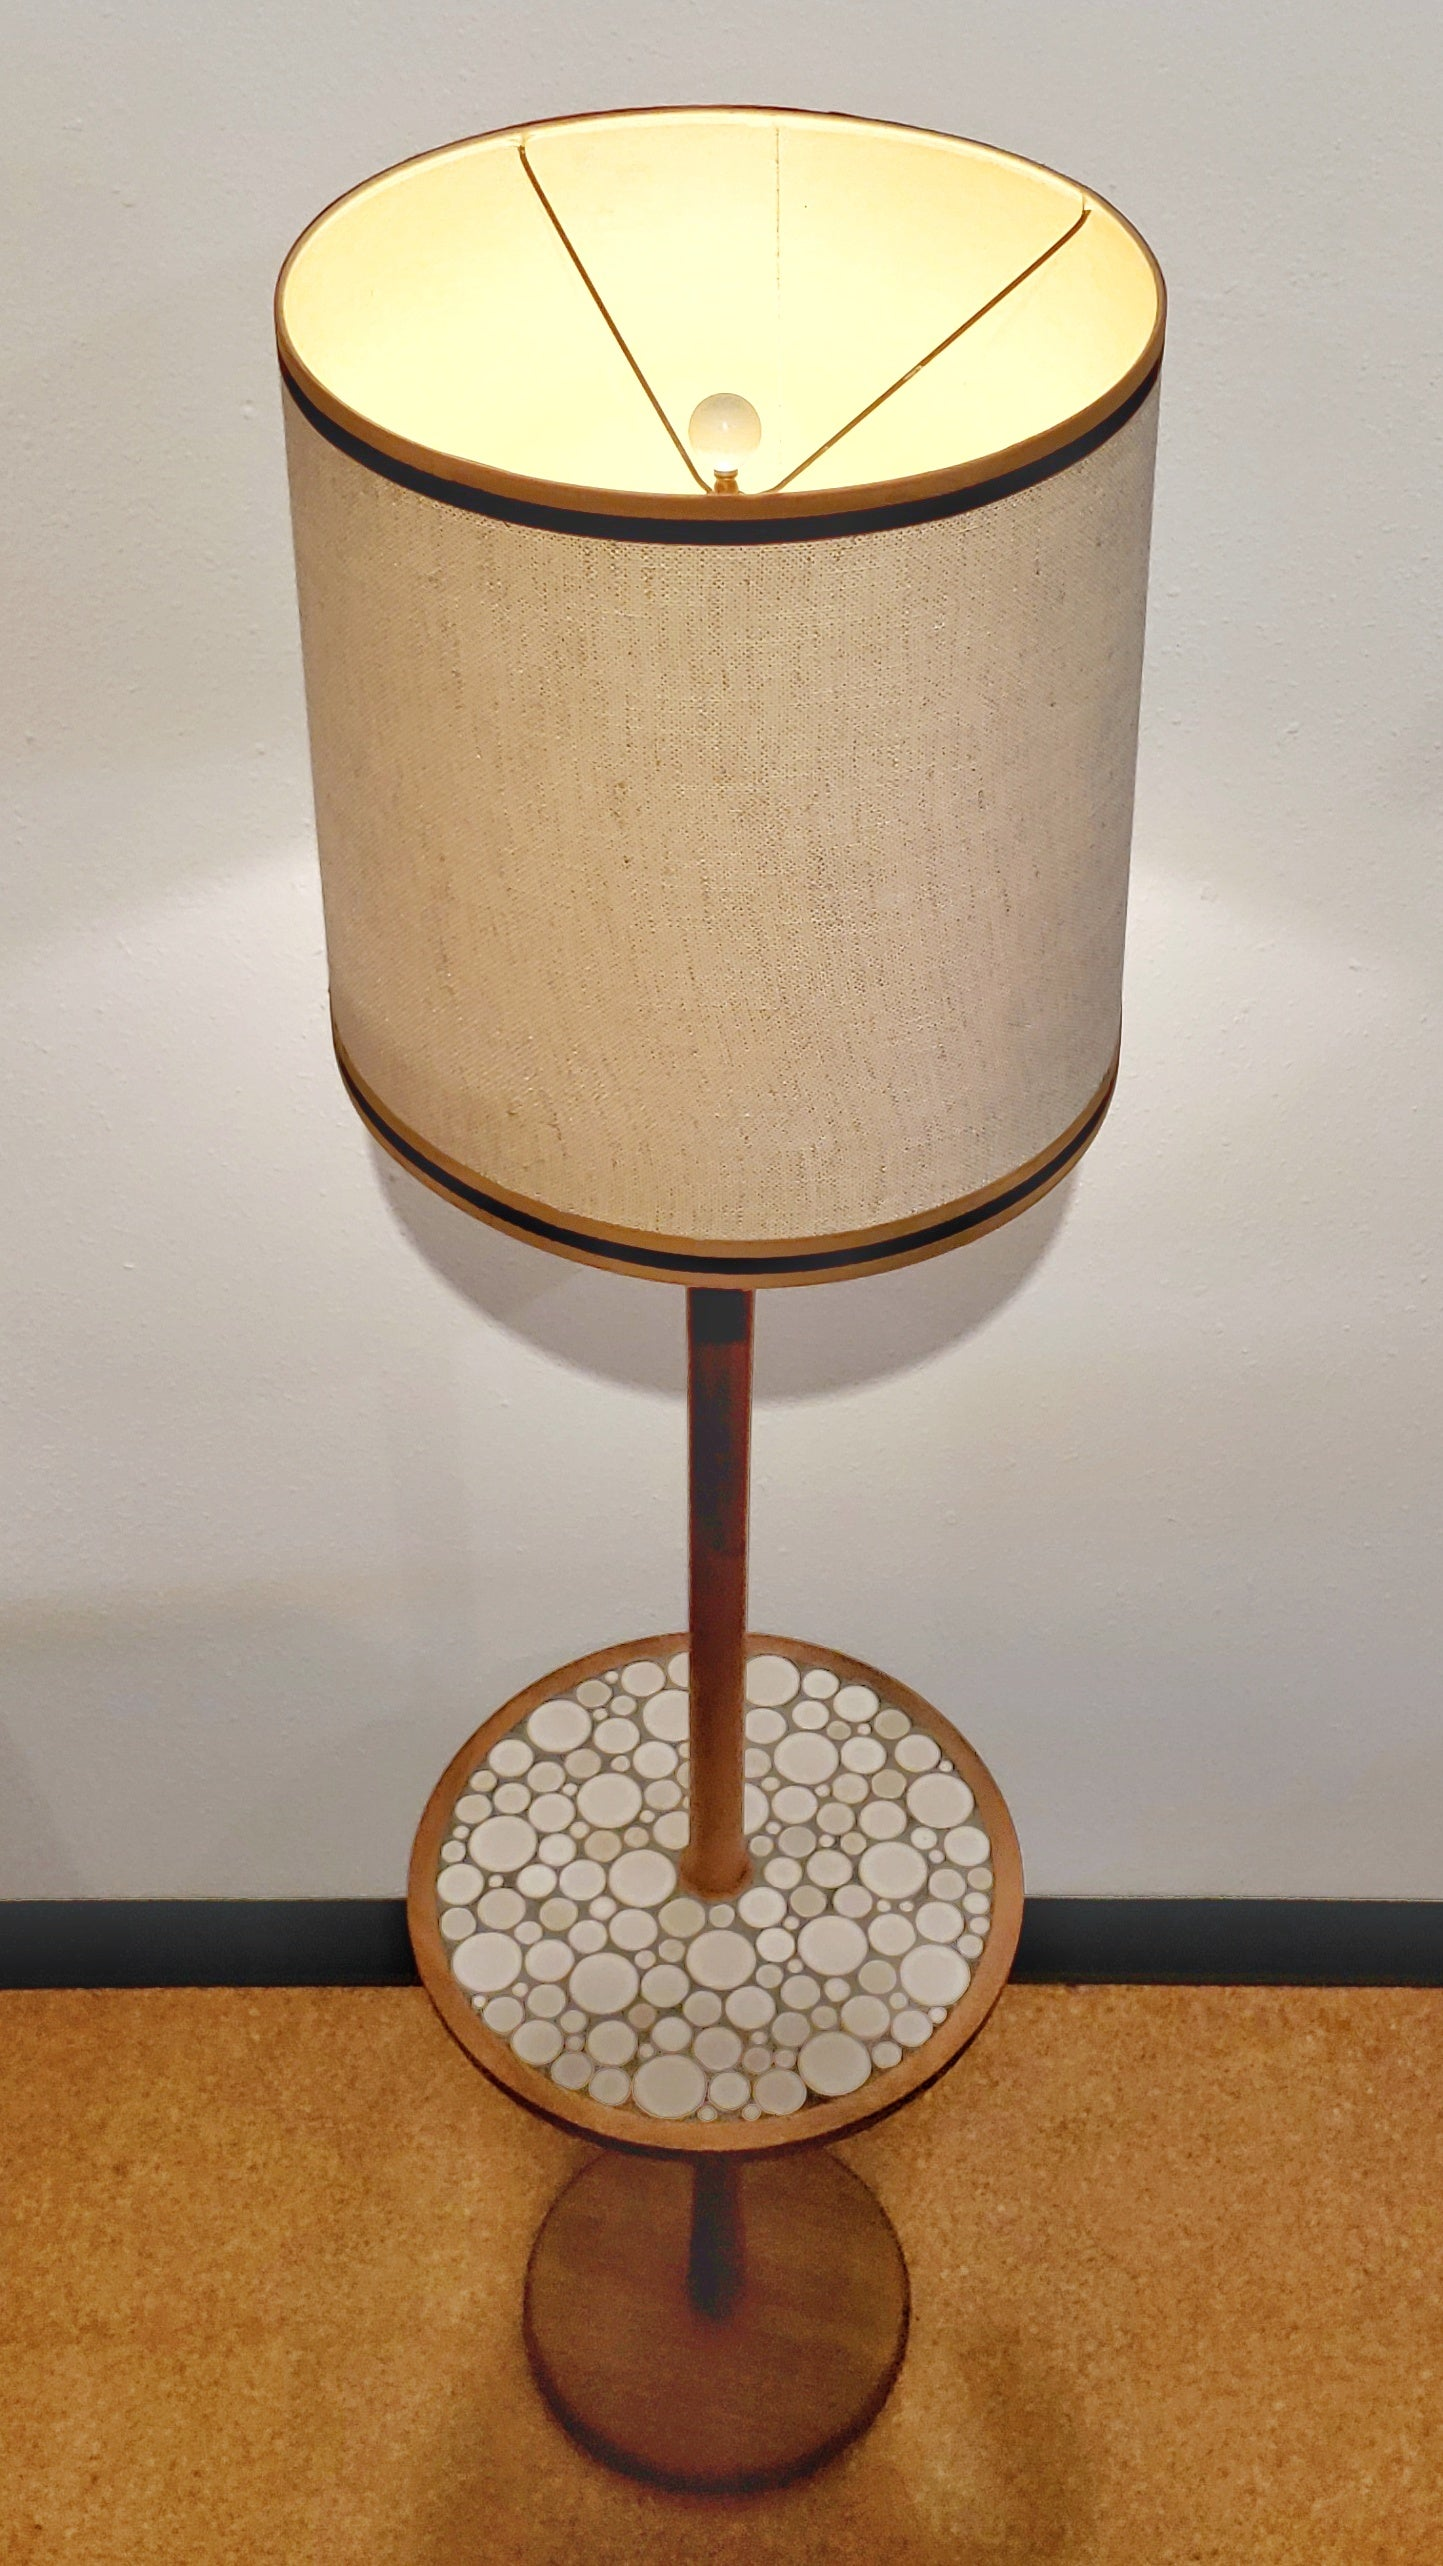 JANE & GORDON MARTZ FLOOR LAMP FOR MARSHALL STUDIOS